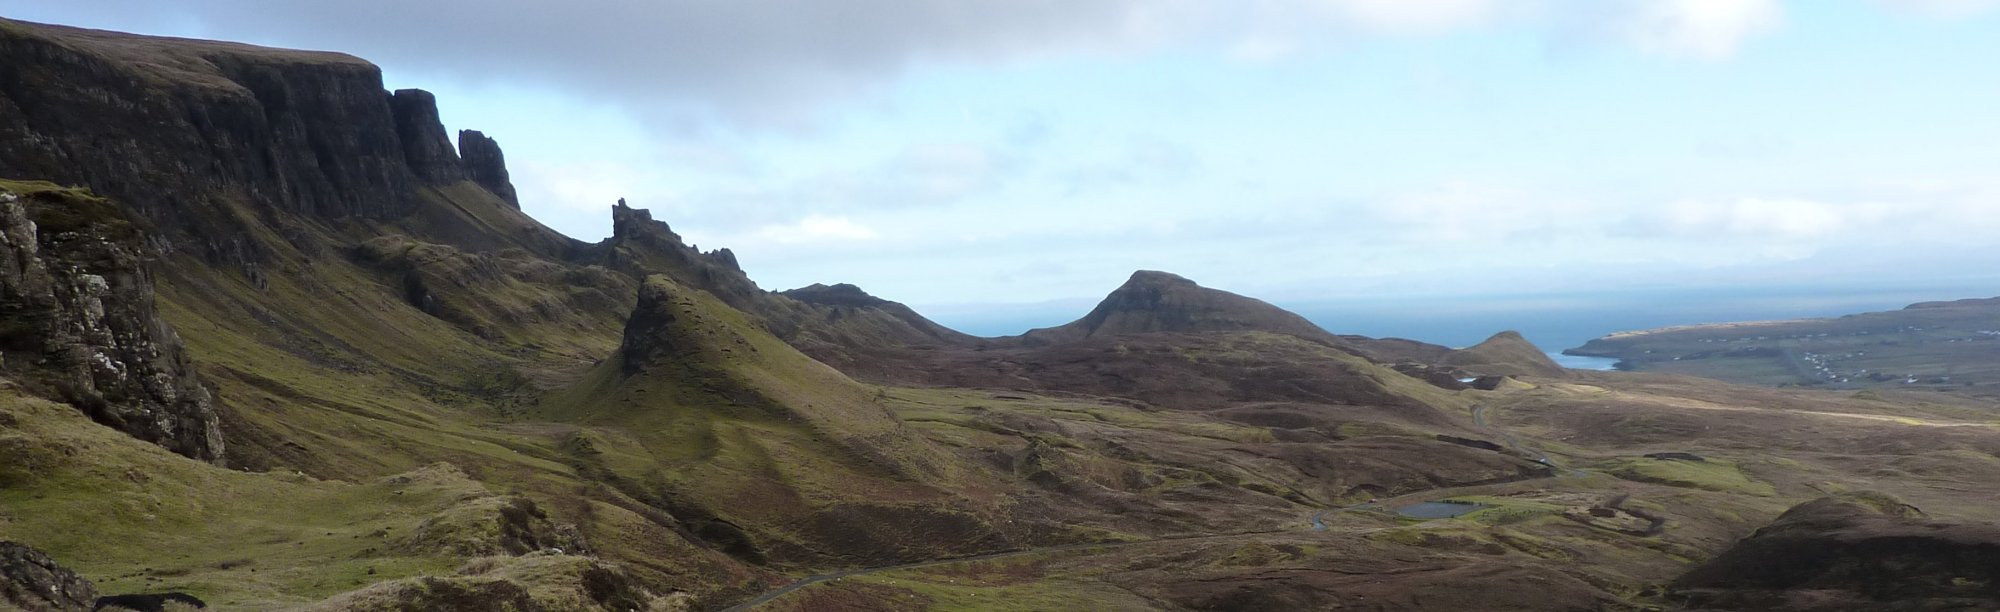 The Quiraing forms part of the famous Trotternish Ridge